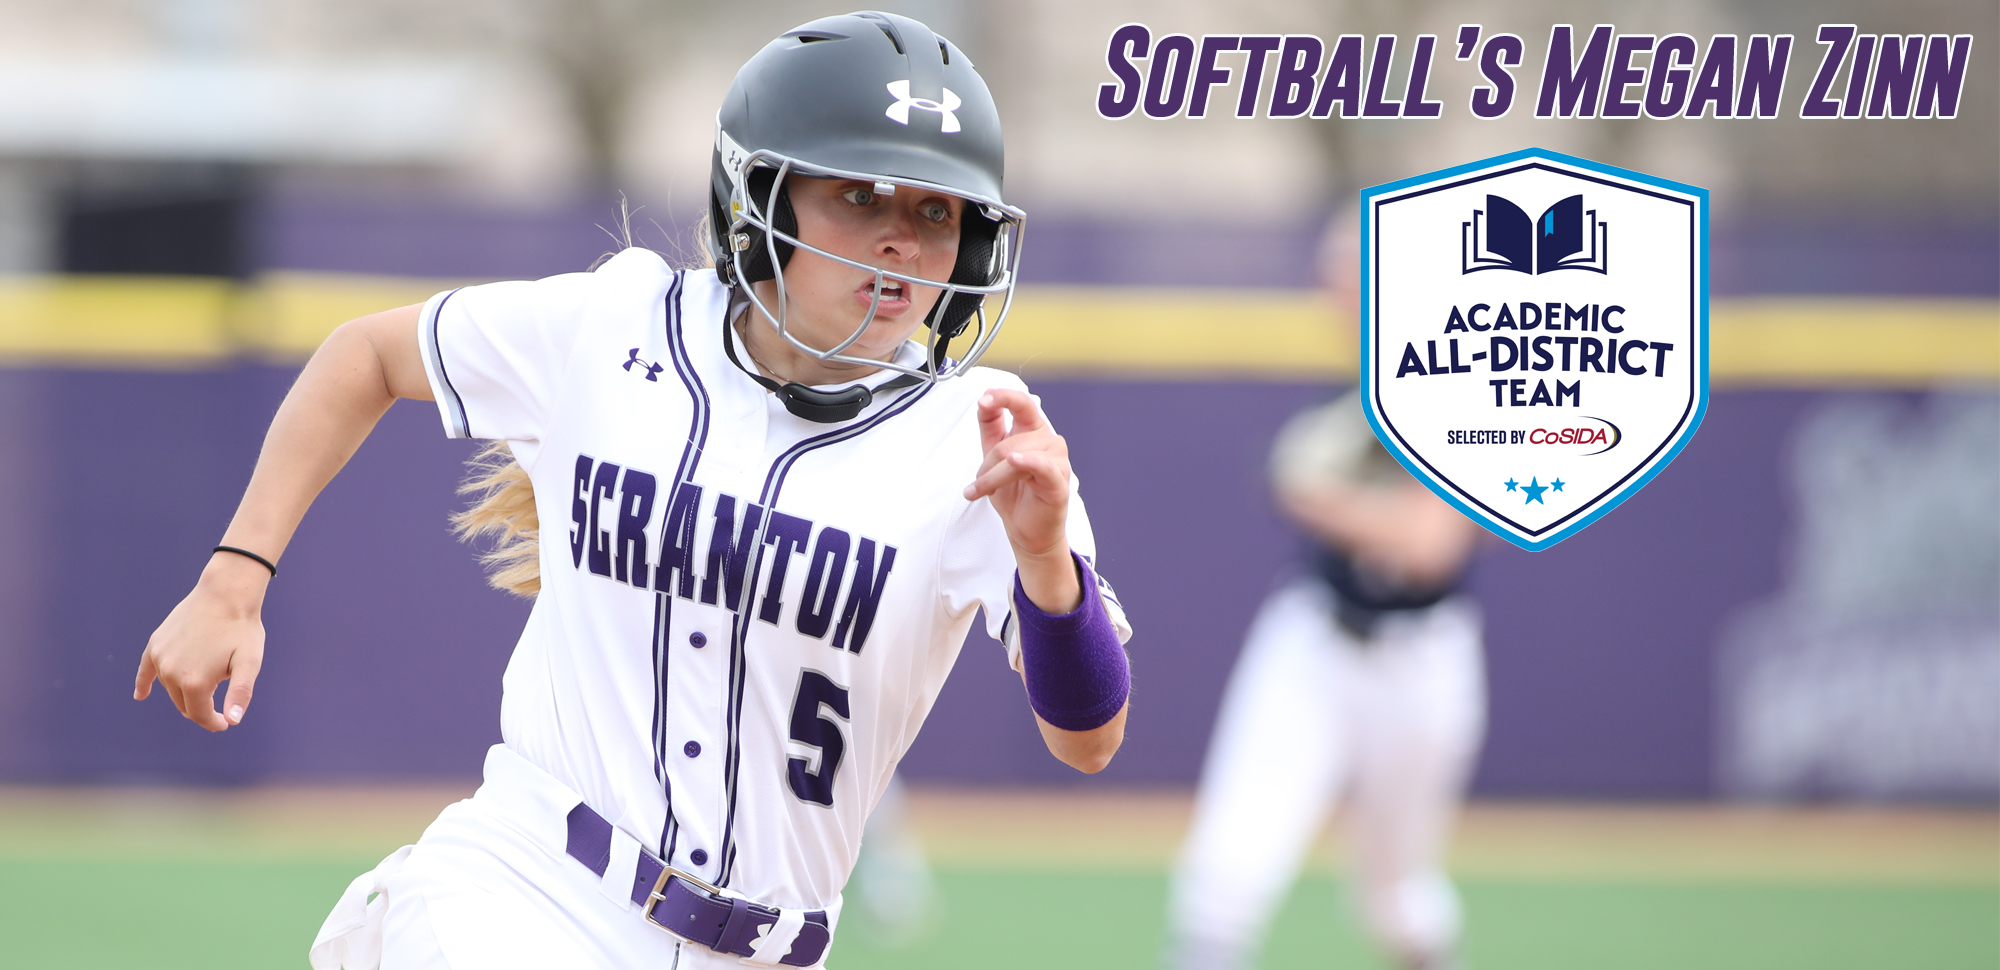 Senior Megan Zinn of the softball team was named to the CoSIDA Academic All-District Team for the third straight season on Thursday.